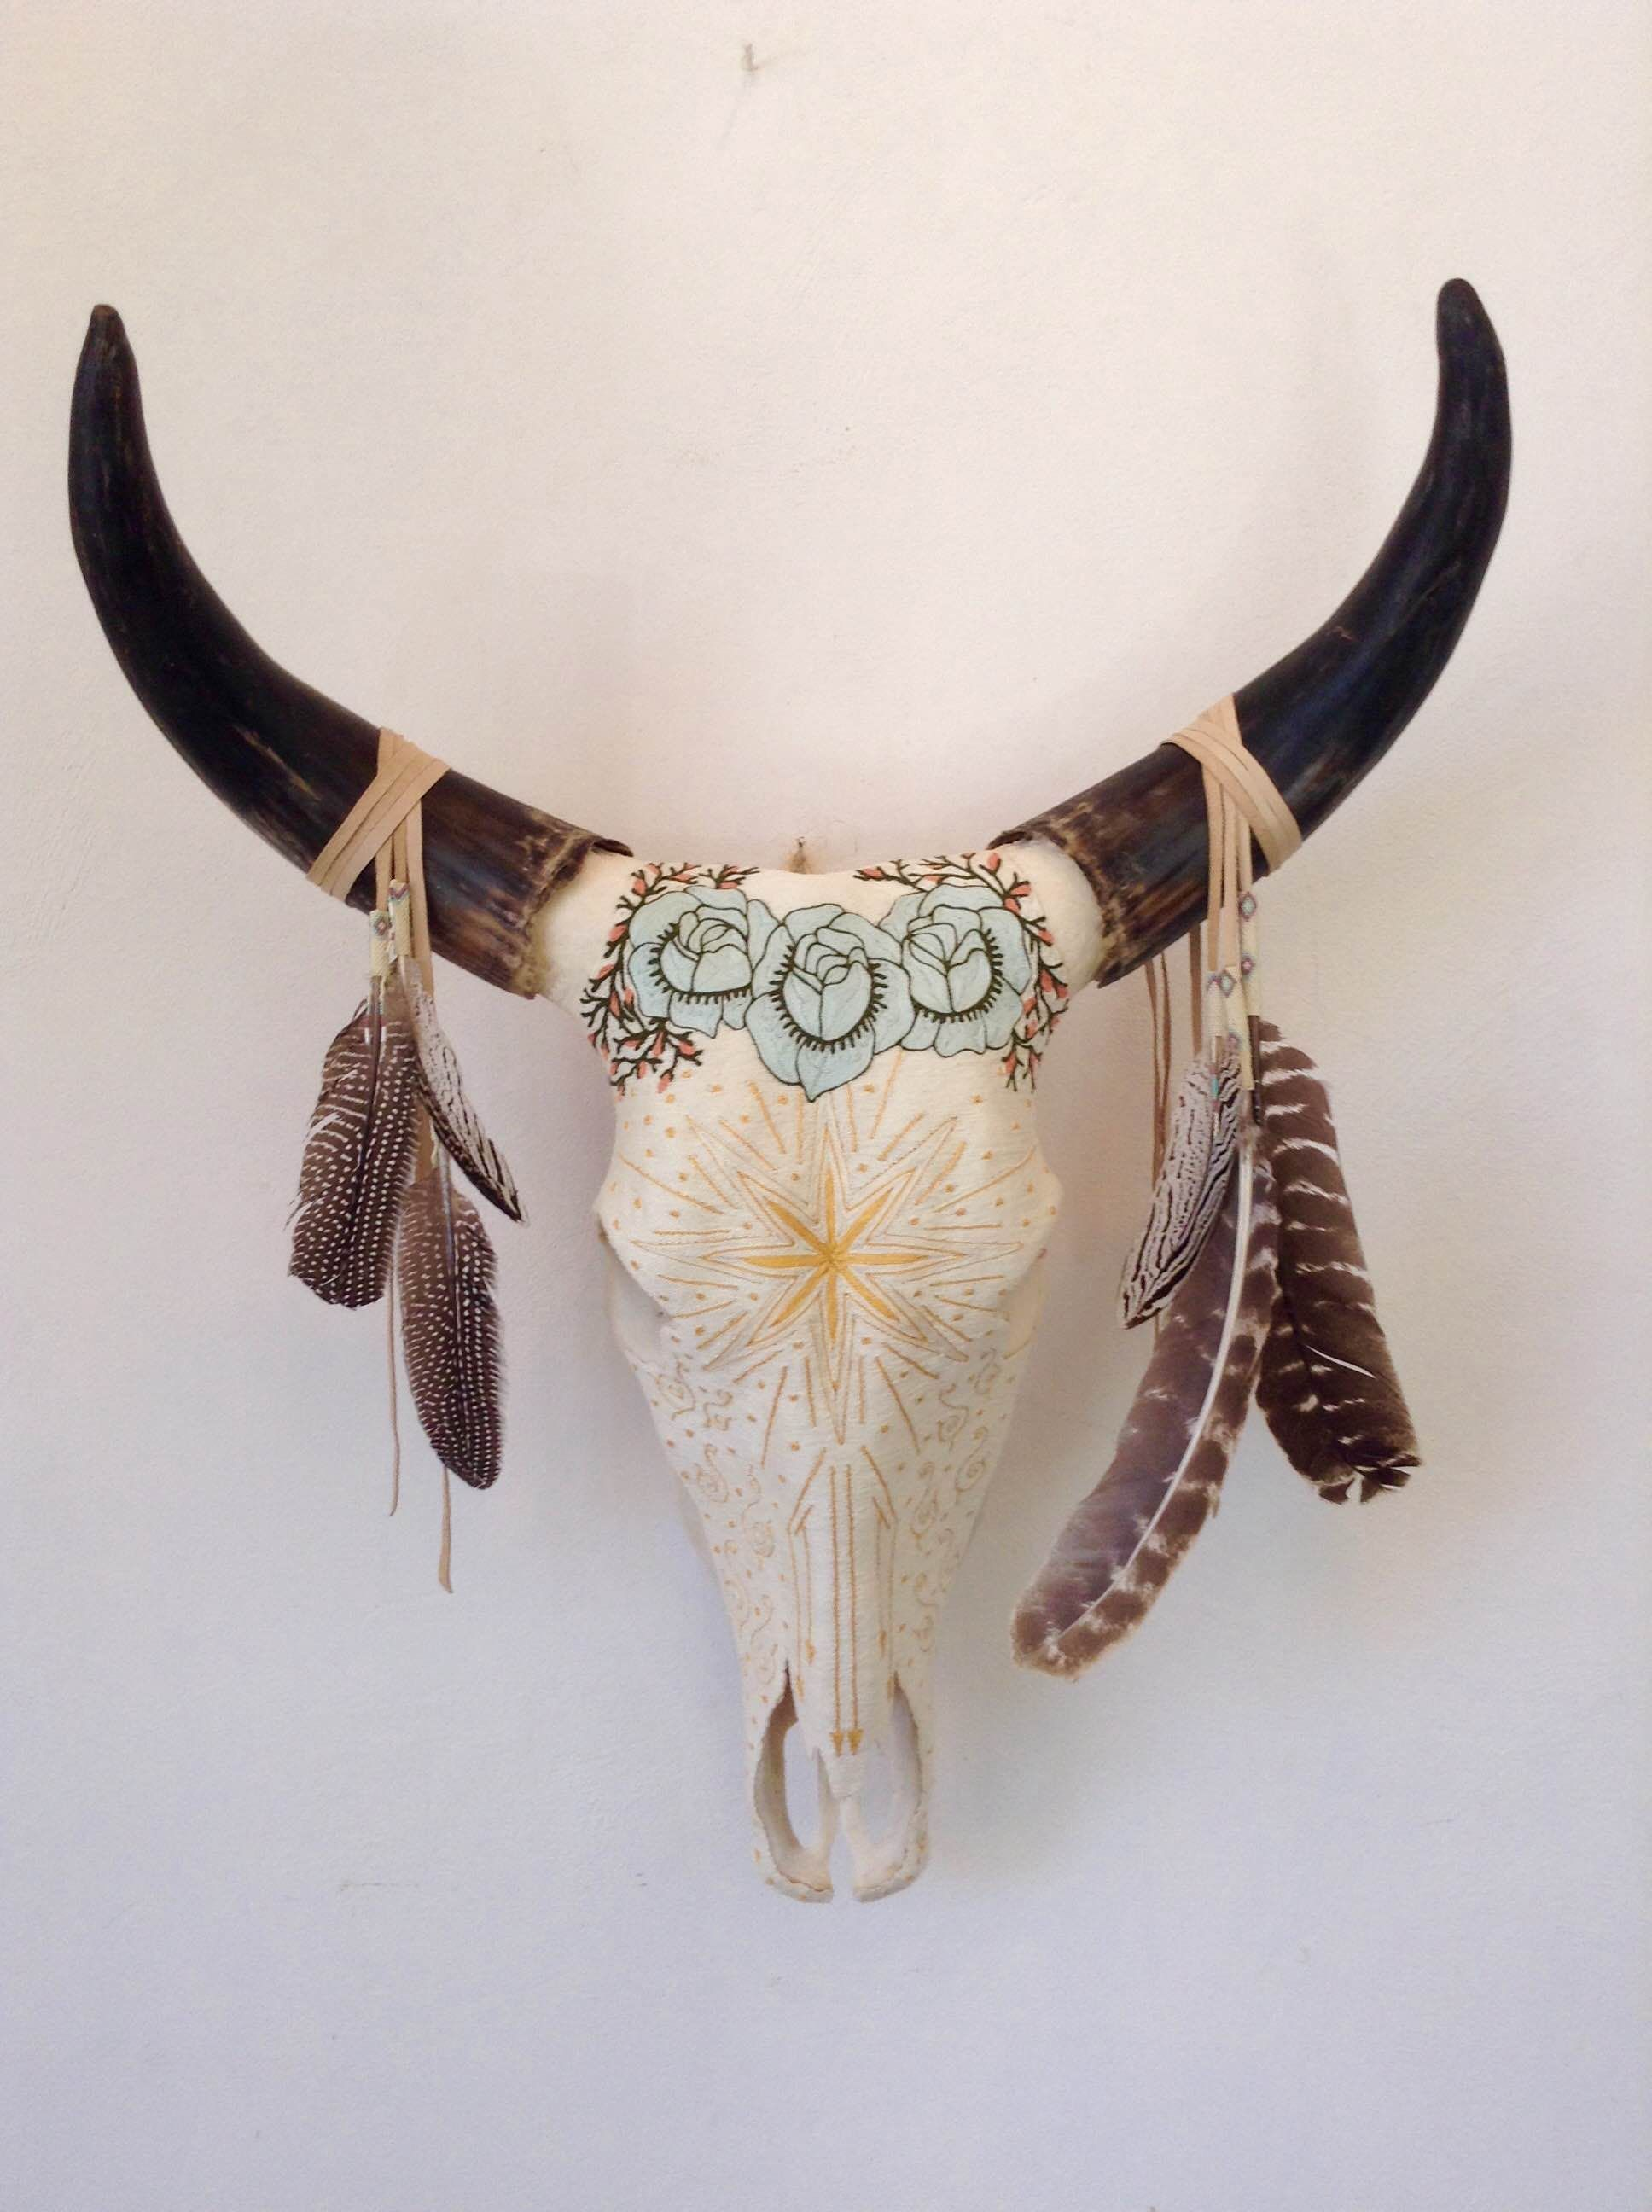 Floral Boho Style Hand Decorated Painted Real Cow Bull Skull for Rustic Country Home Decor or Wedding Decor